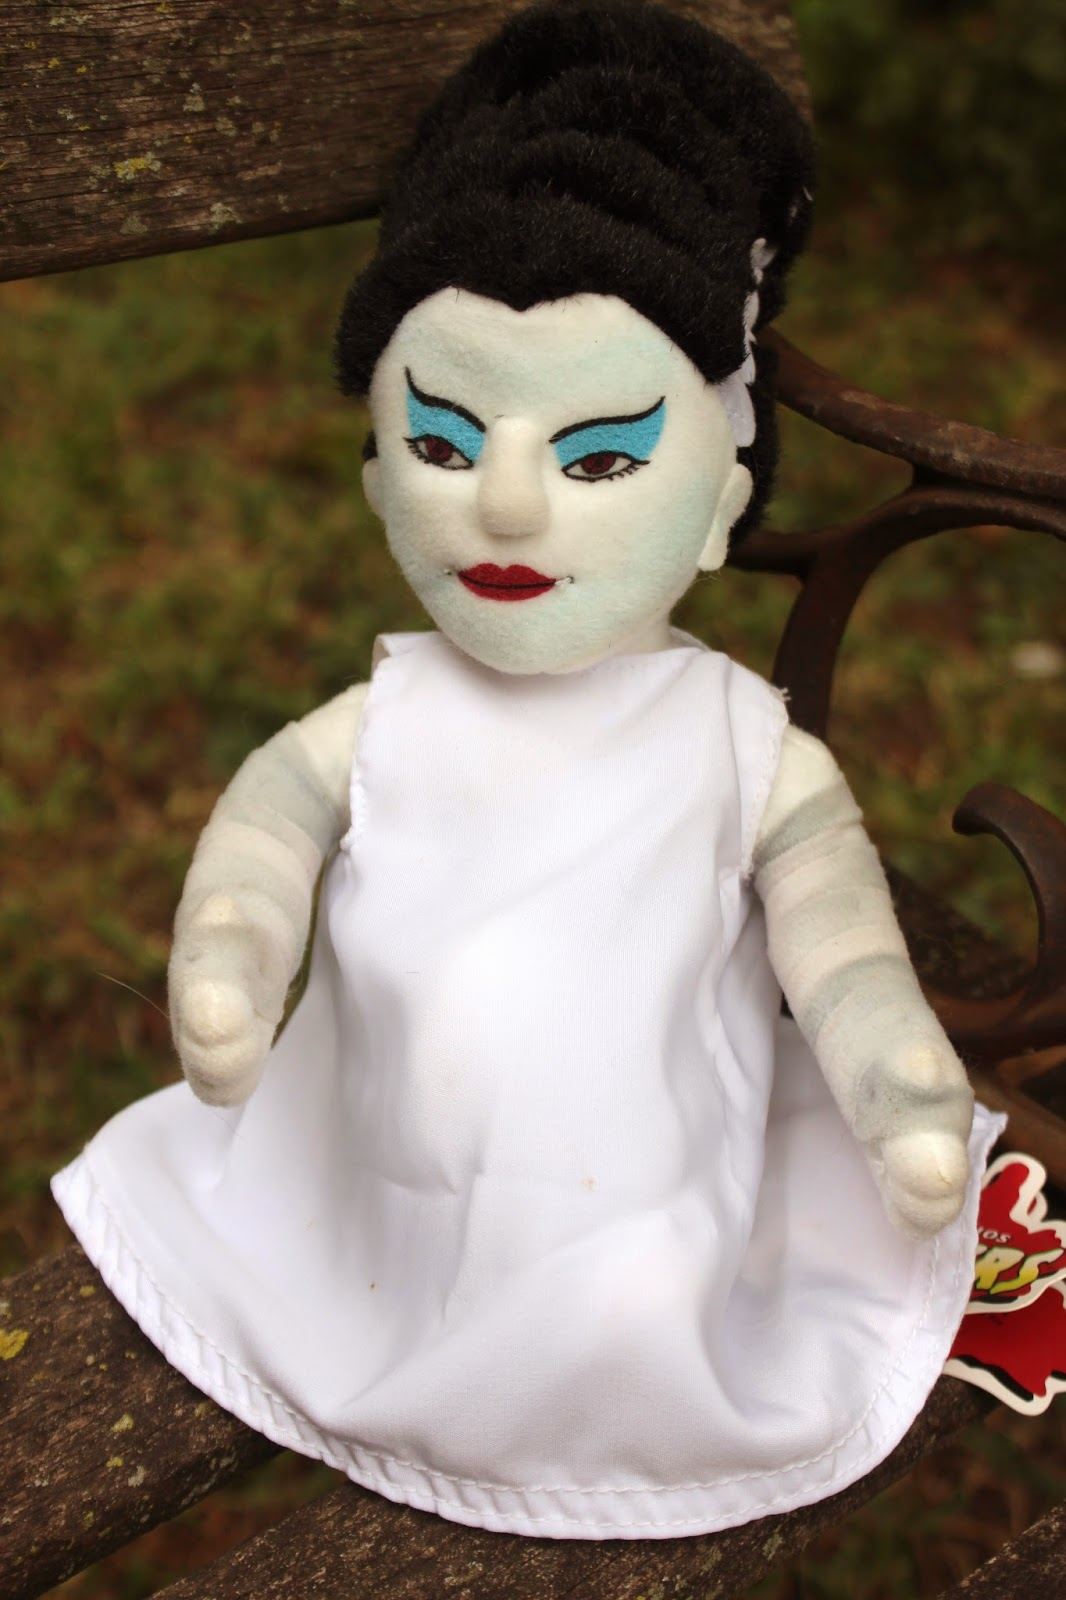 PLANET OF THE DOLLS: Doll-A-Day 279: Happy Halloween! It's ...